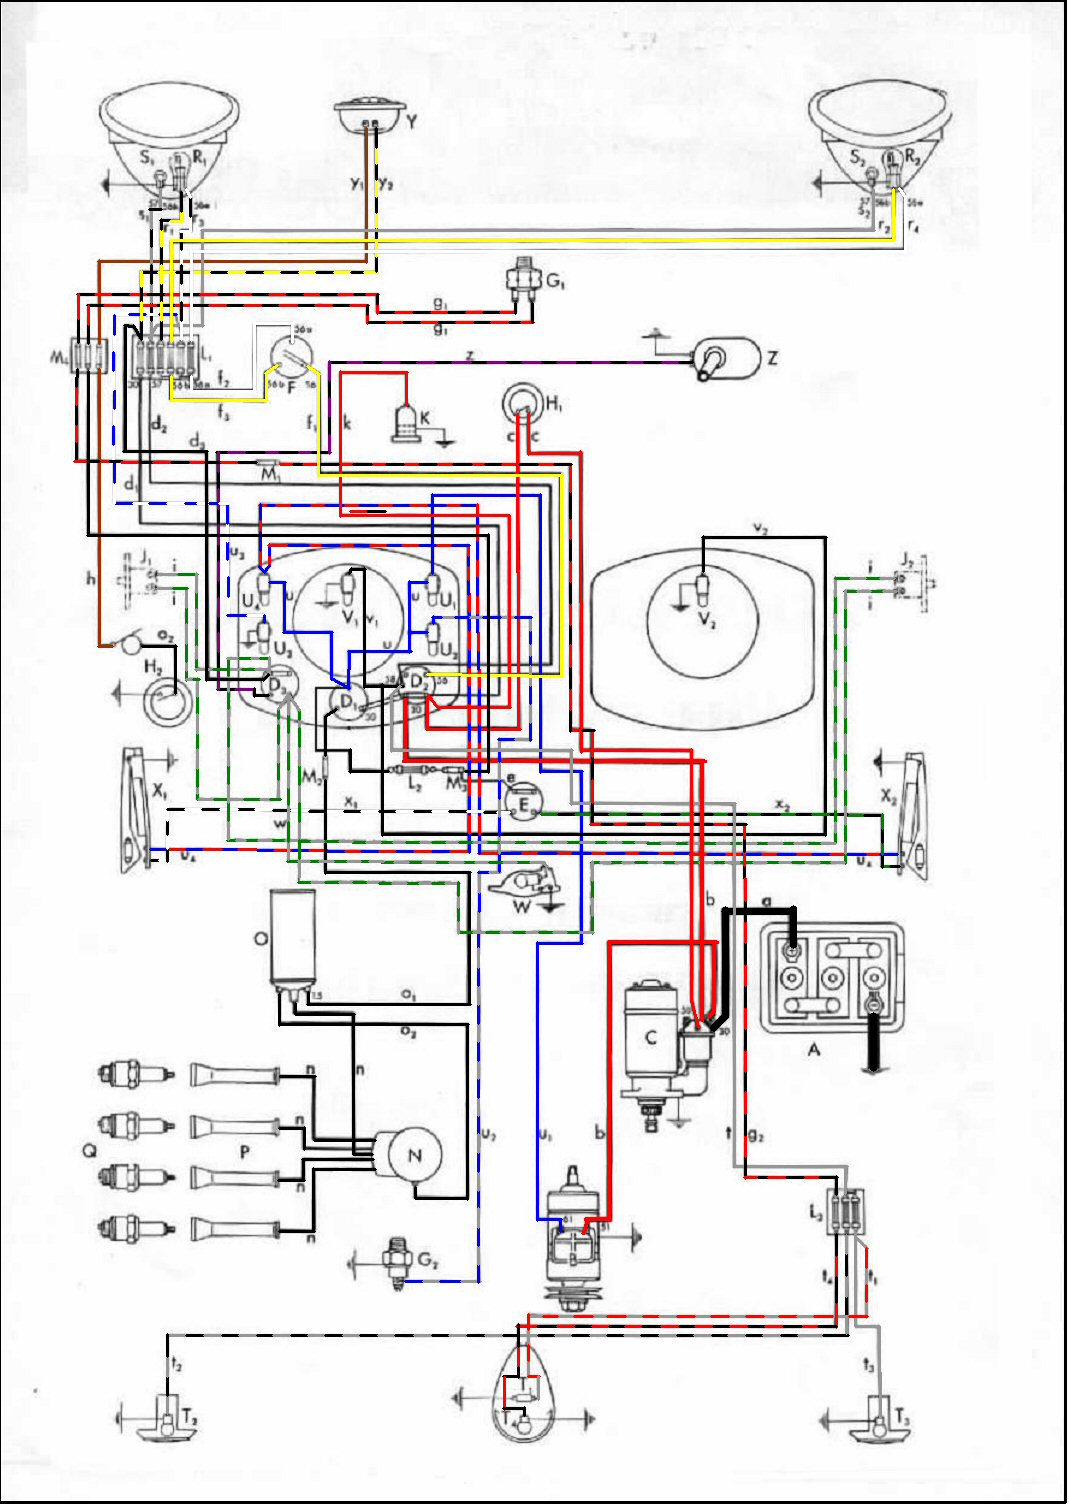 Kia Pride Wiring Diagram Pdf : Wiring diagram of kia pride library